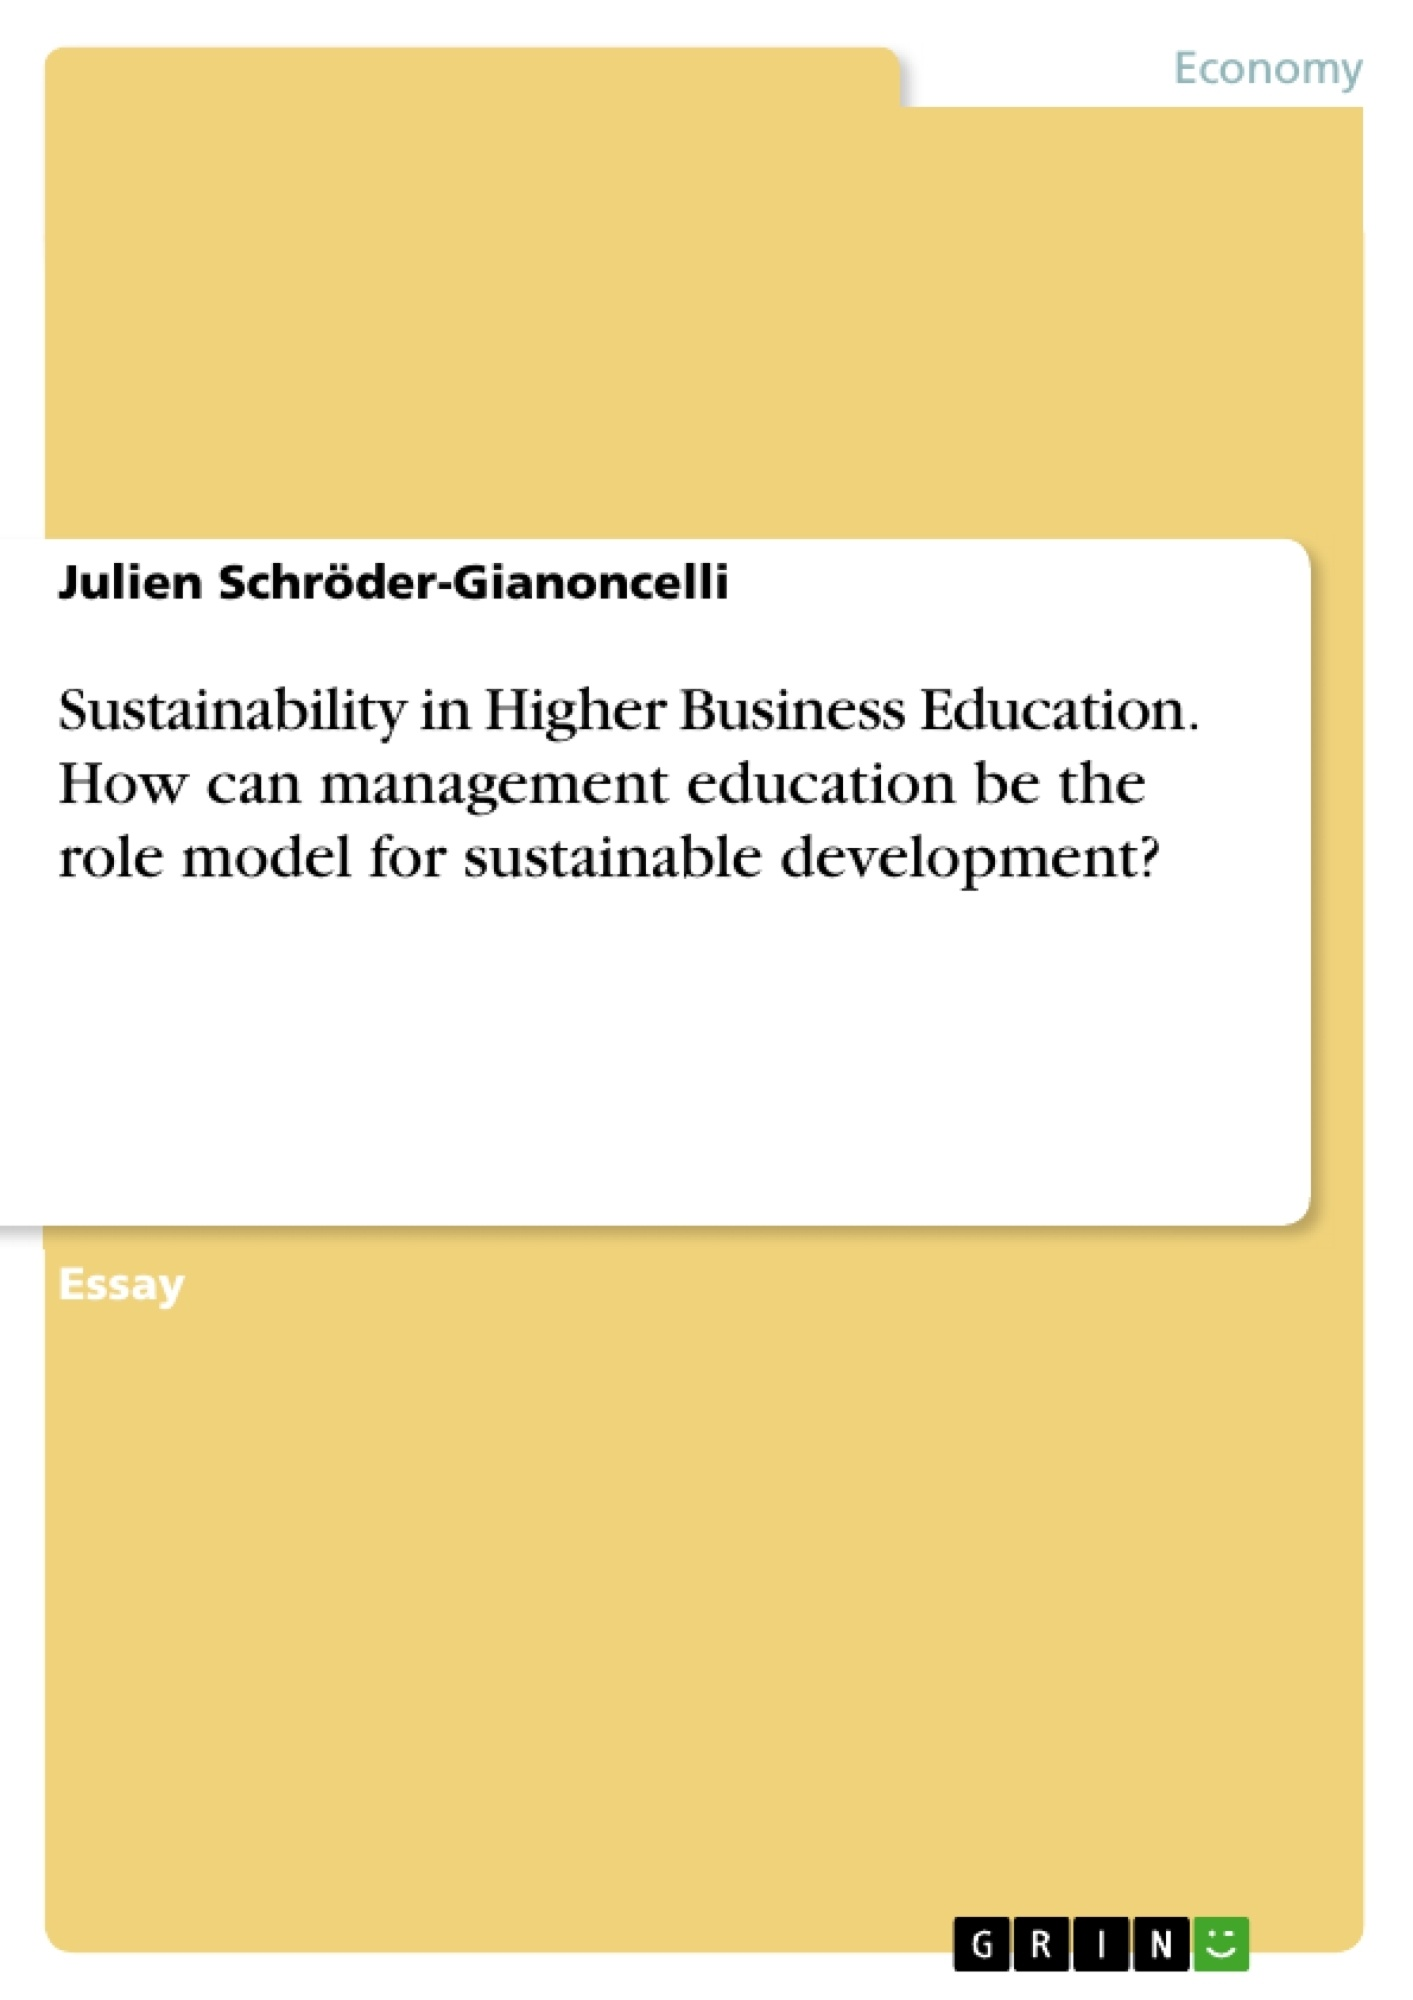 Title: Sustainability in Higher Business Education. How can management education be the role model for sustainable development?